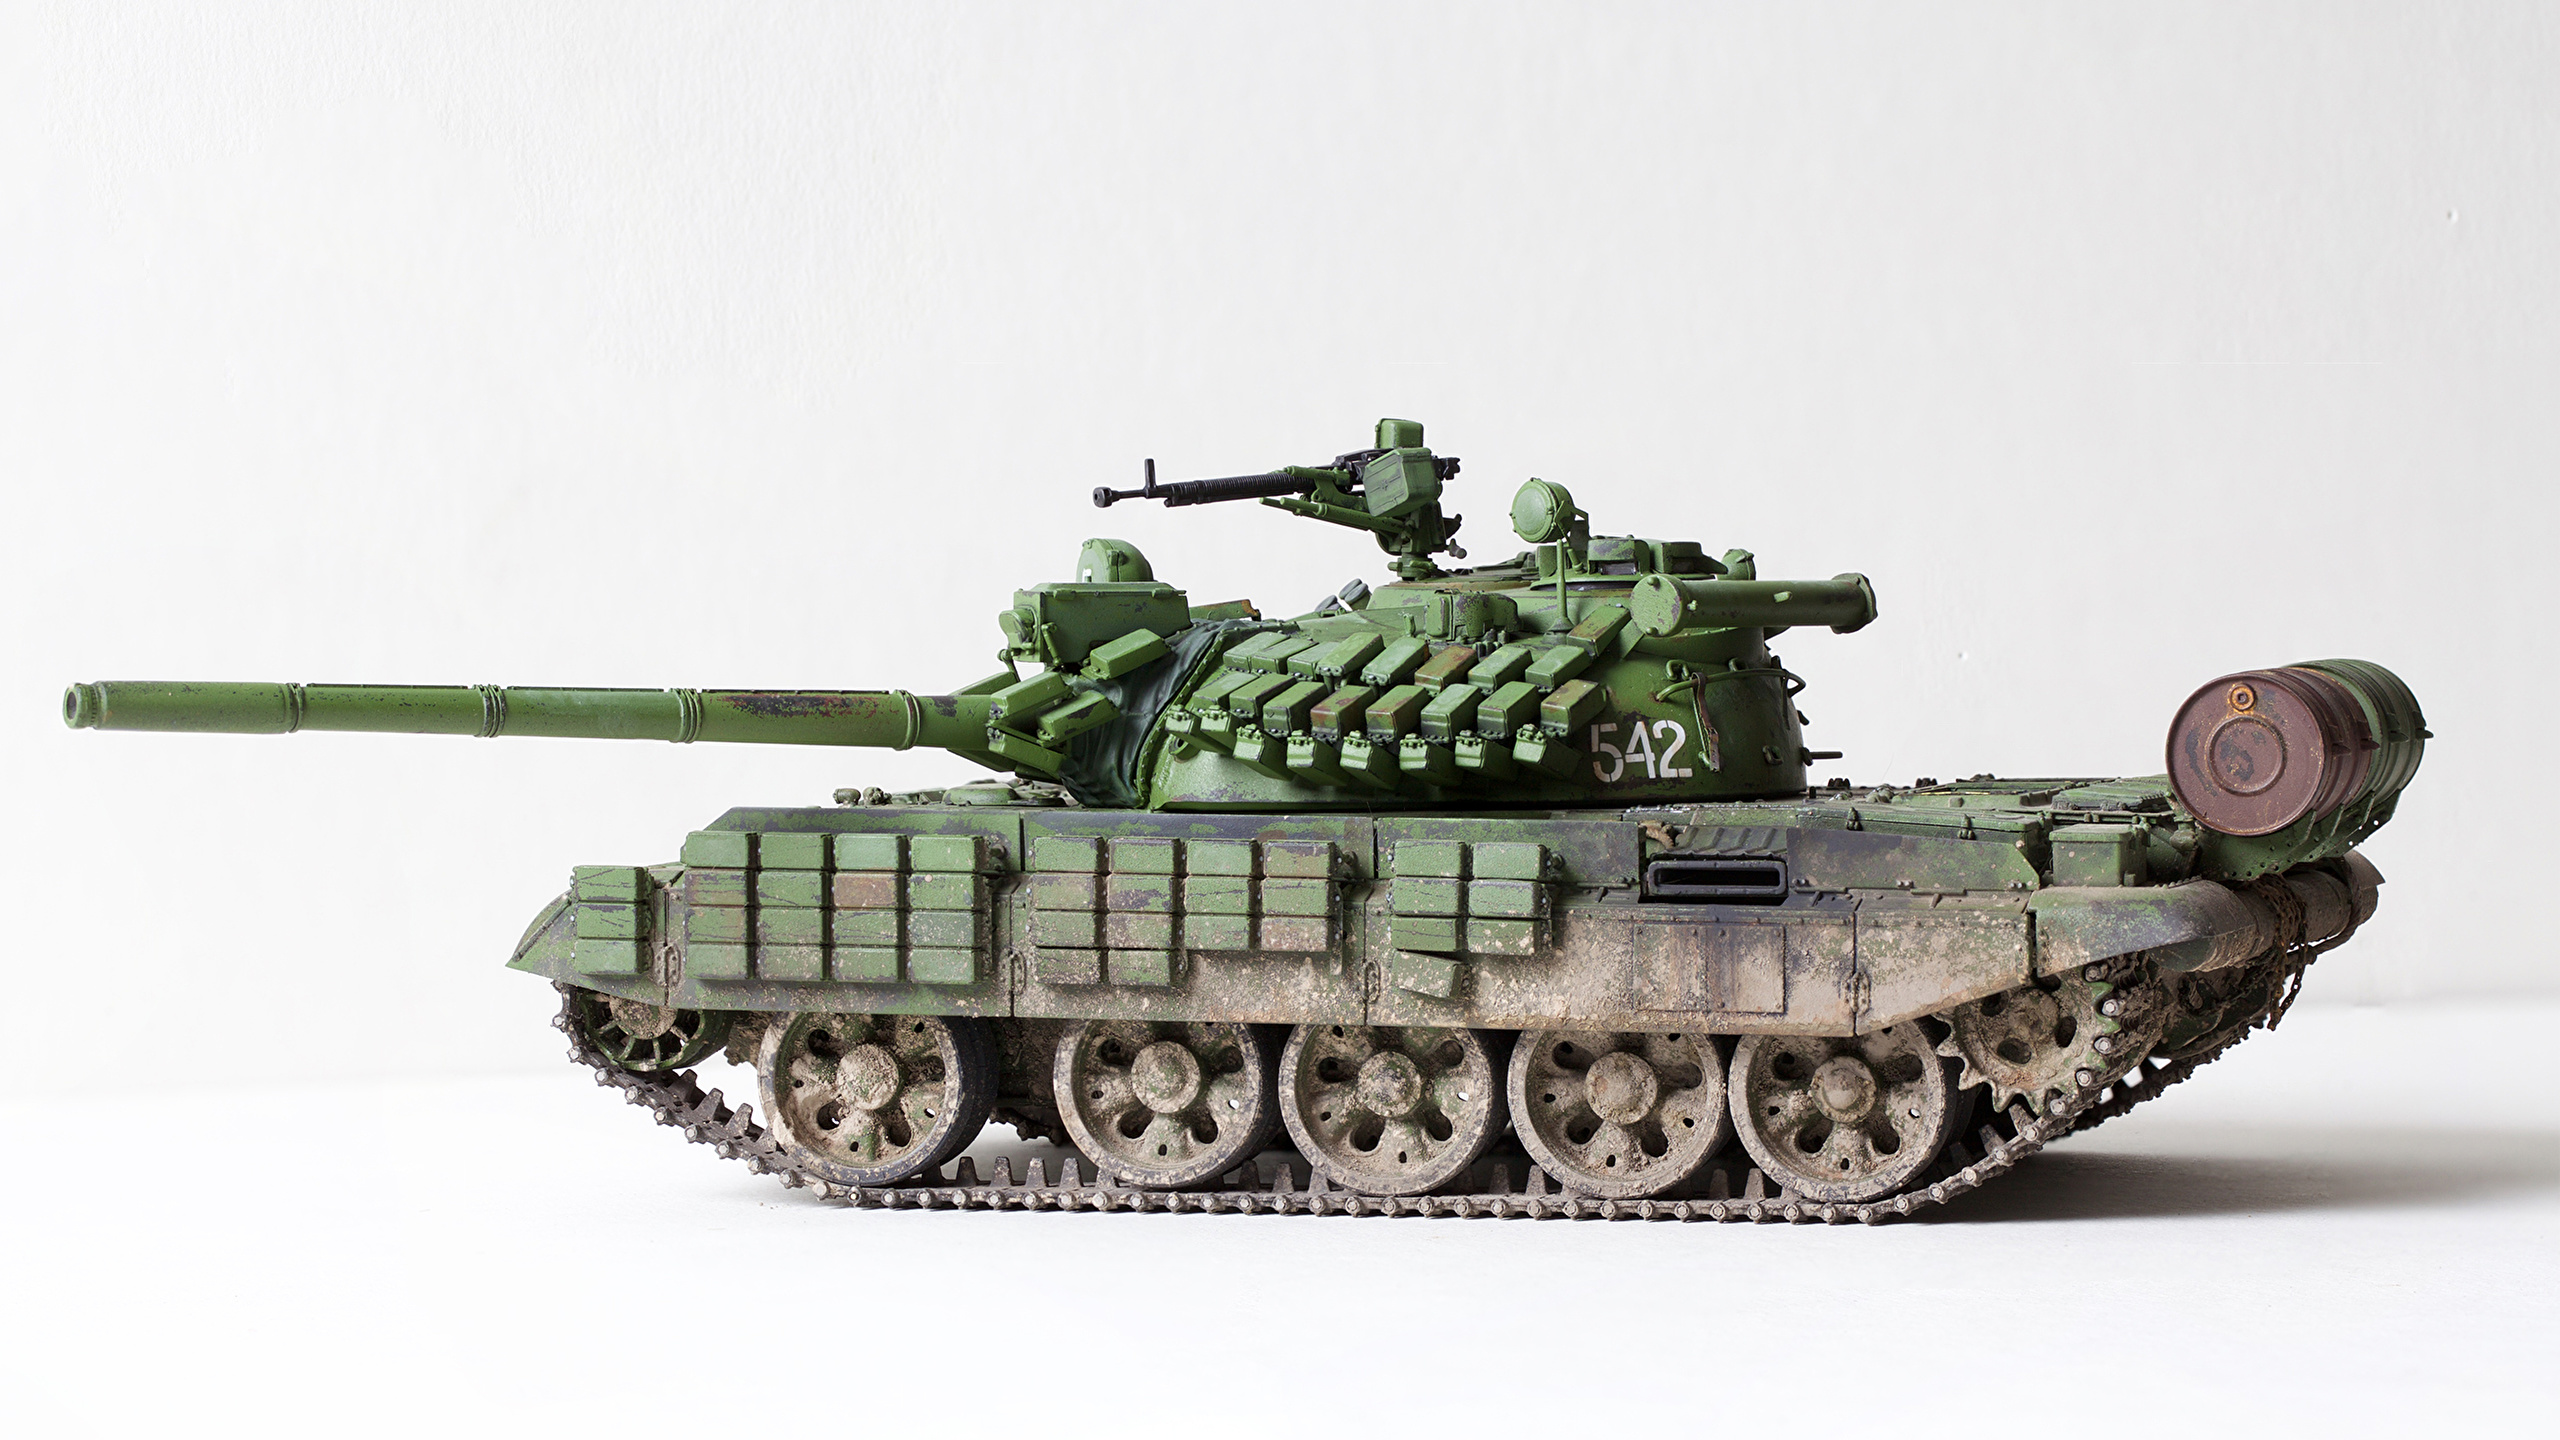 Photo Tanks Russian T 55 AMV Toys White background Army 2560x1440 2560x1440